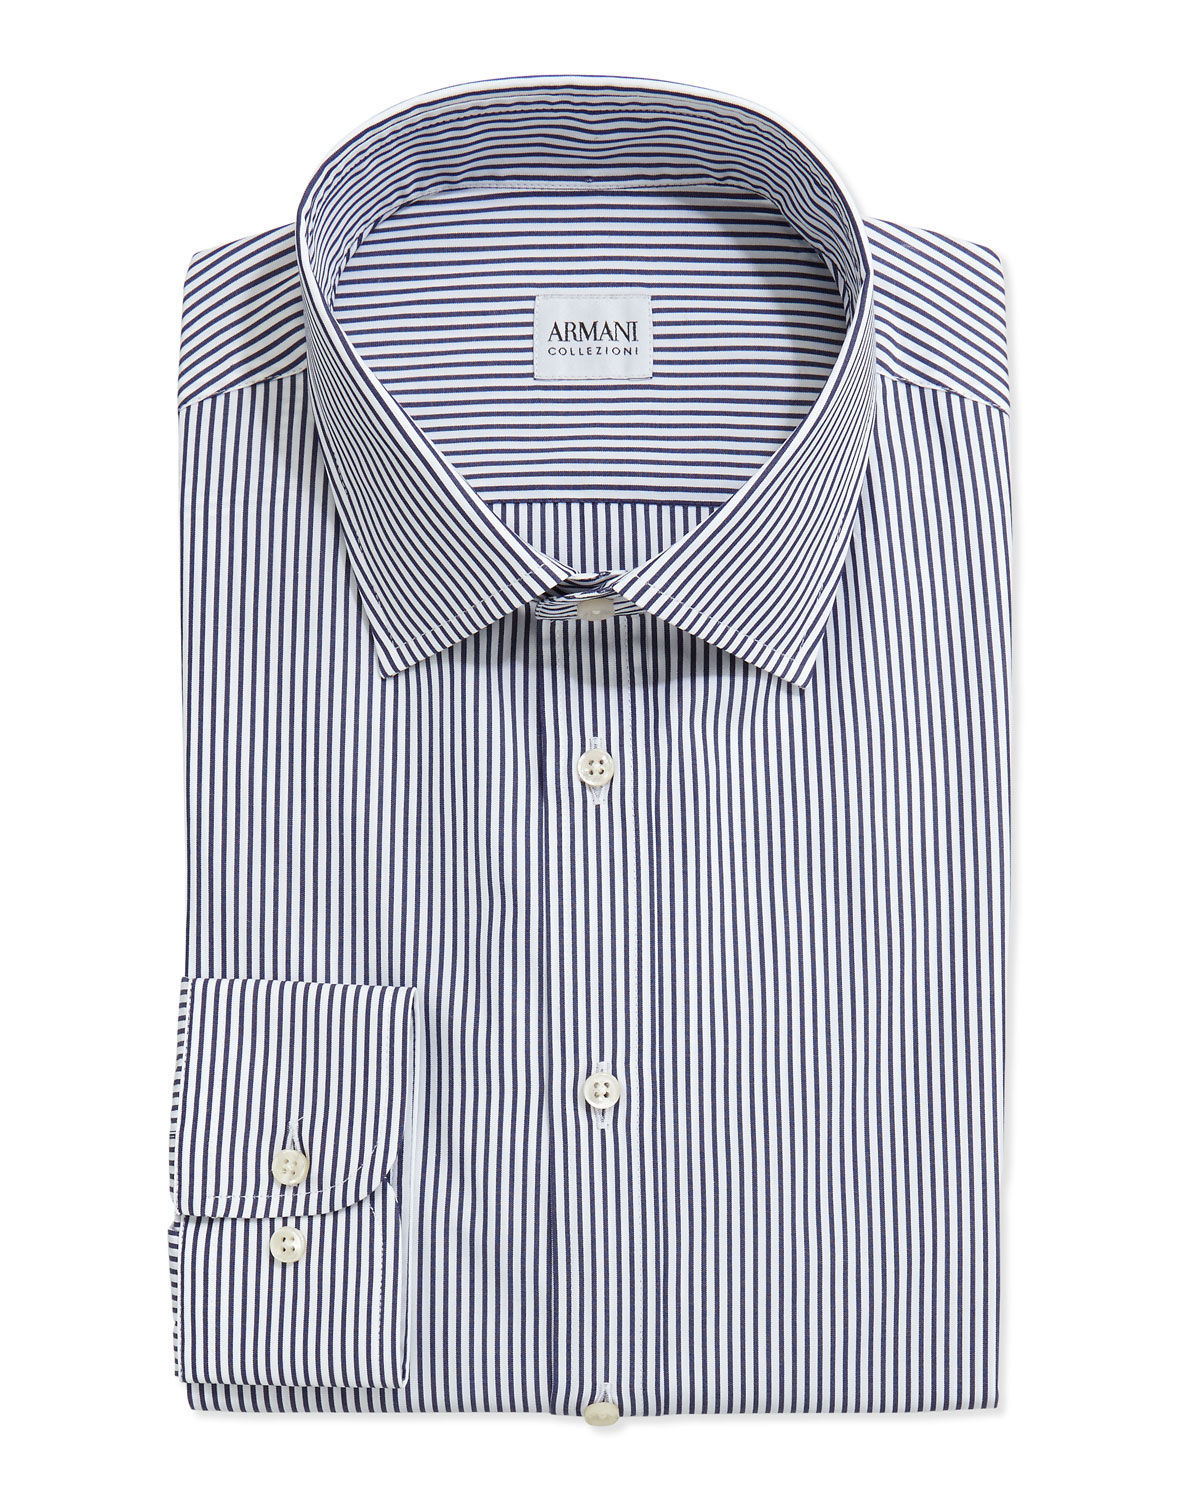 Bengal-Stripe Woven Dress Shirt, Navy/White